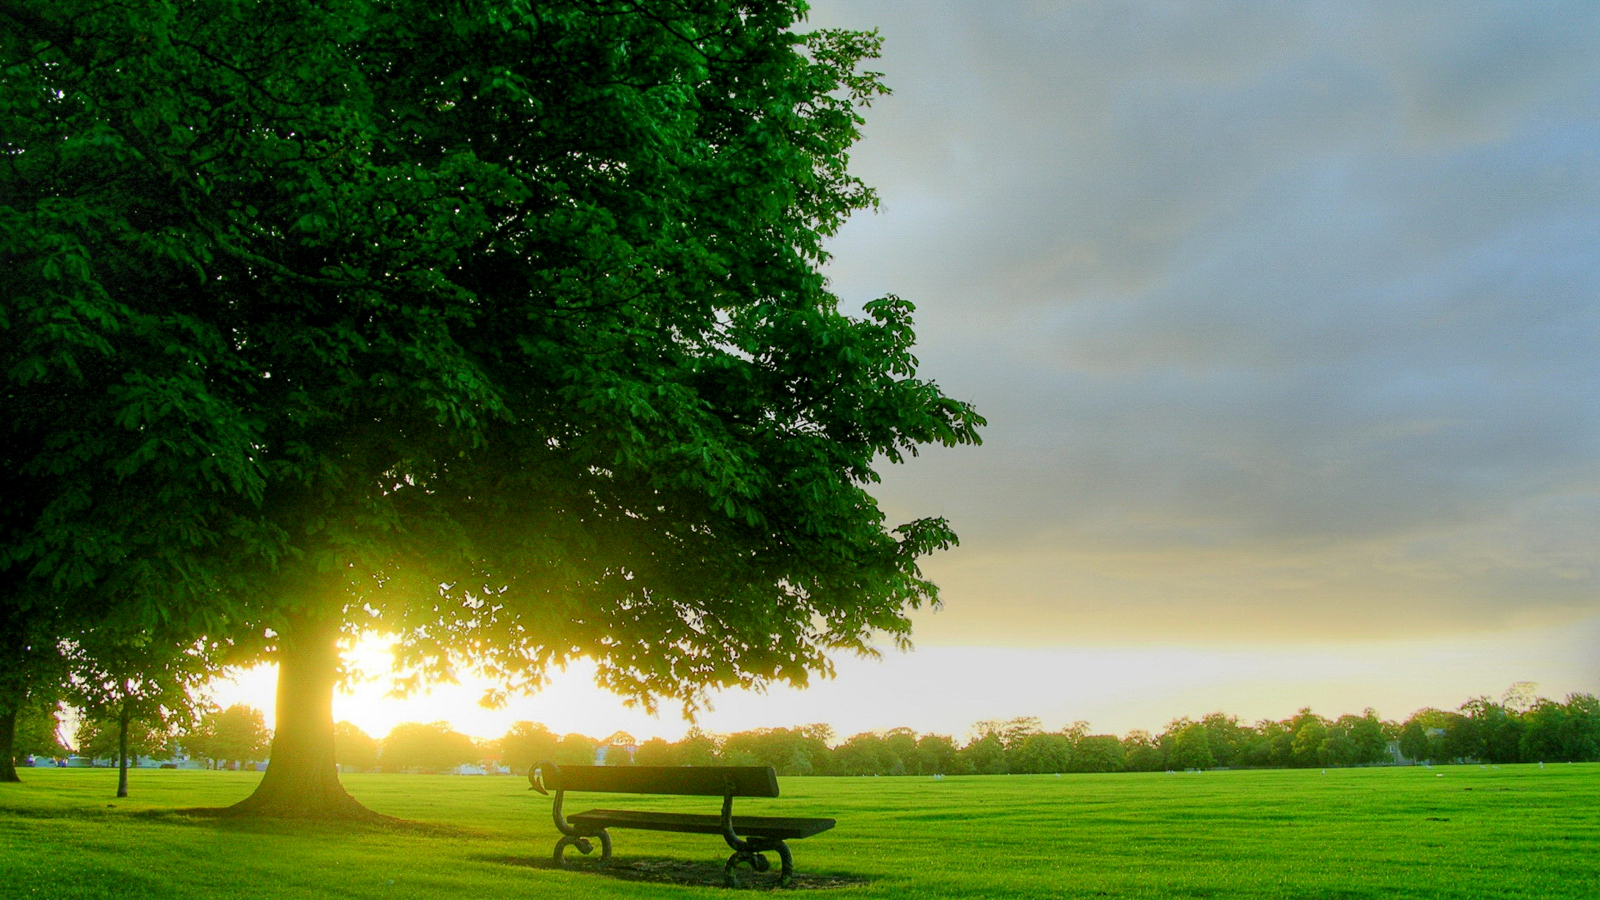 Empty Benches HD Wallpapers Collection Download Free Wallpapers in